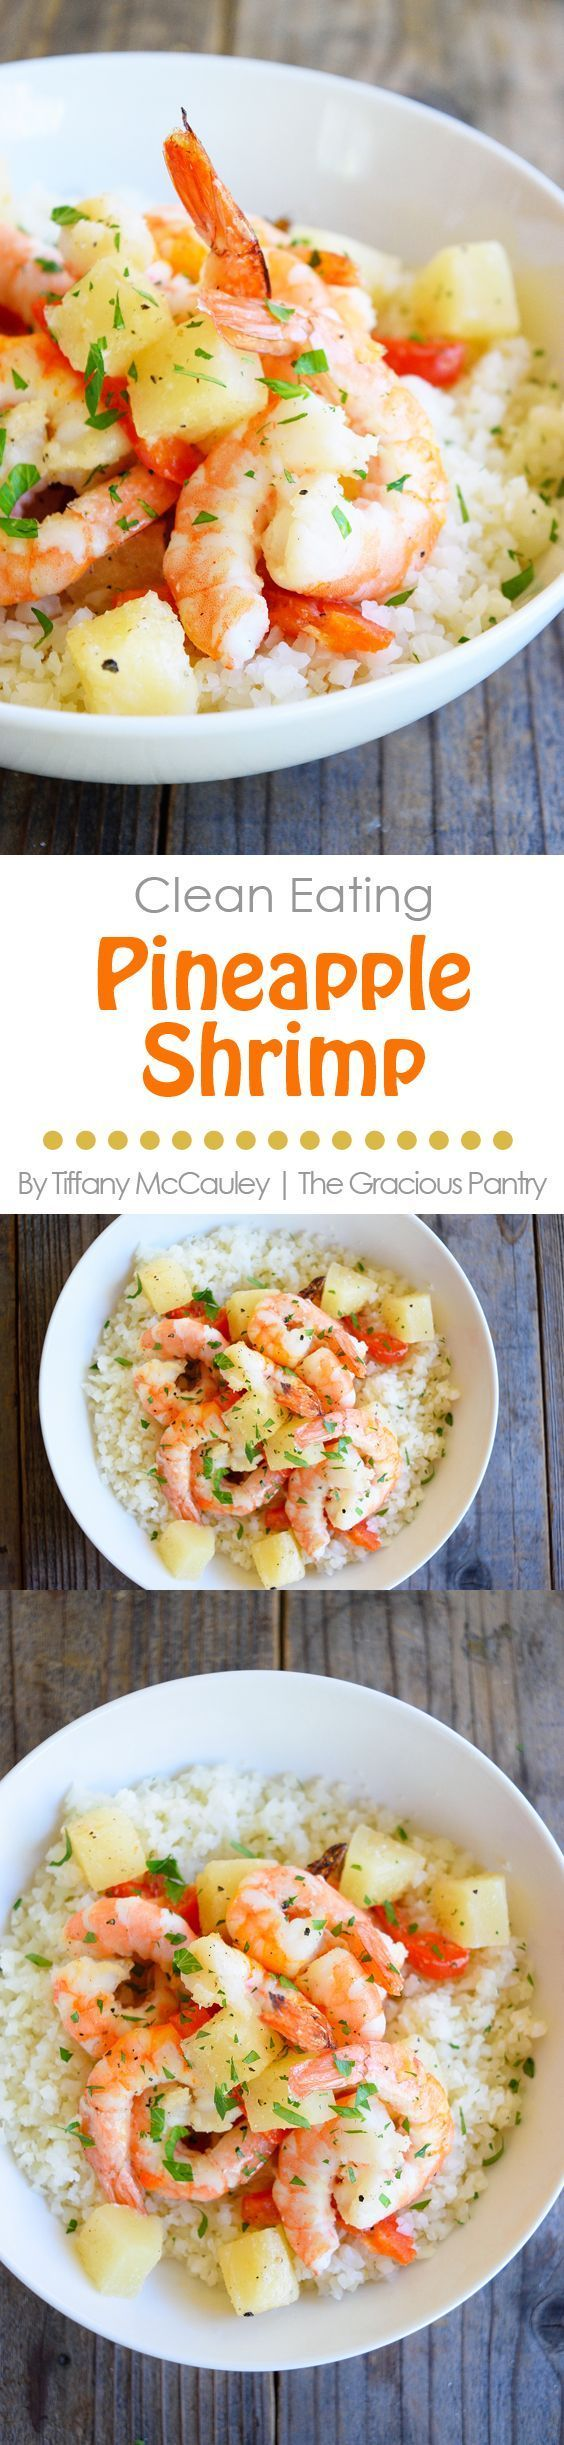 Clean Eating Recipes | Pineapple Shrimp | Shrimp Recipes | Seafood Recipes ~ https://www.thegraciouspantry.com